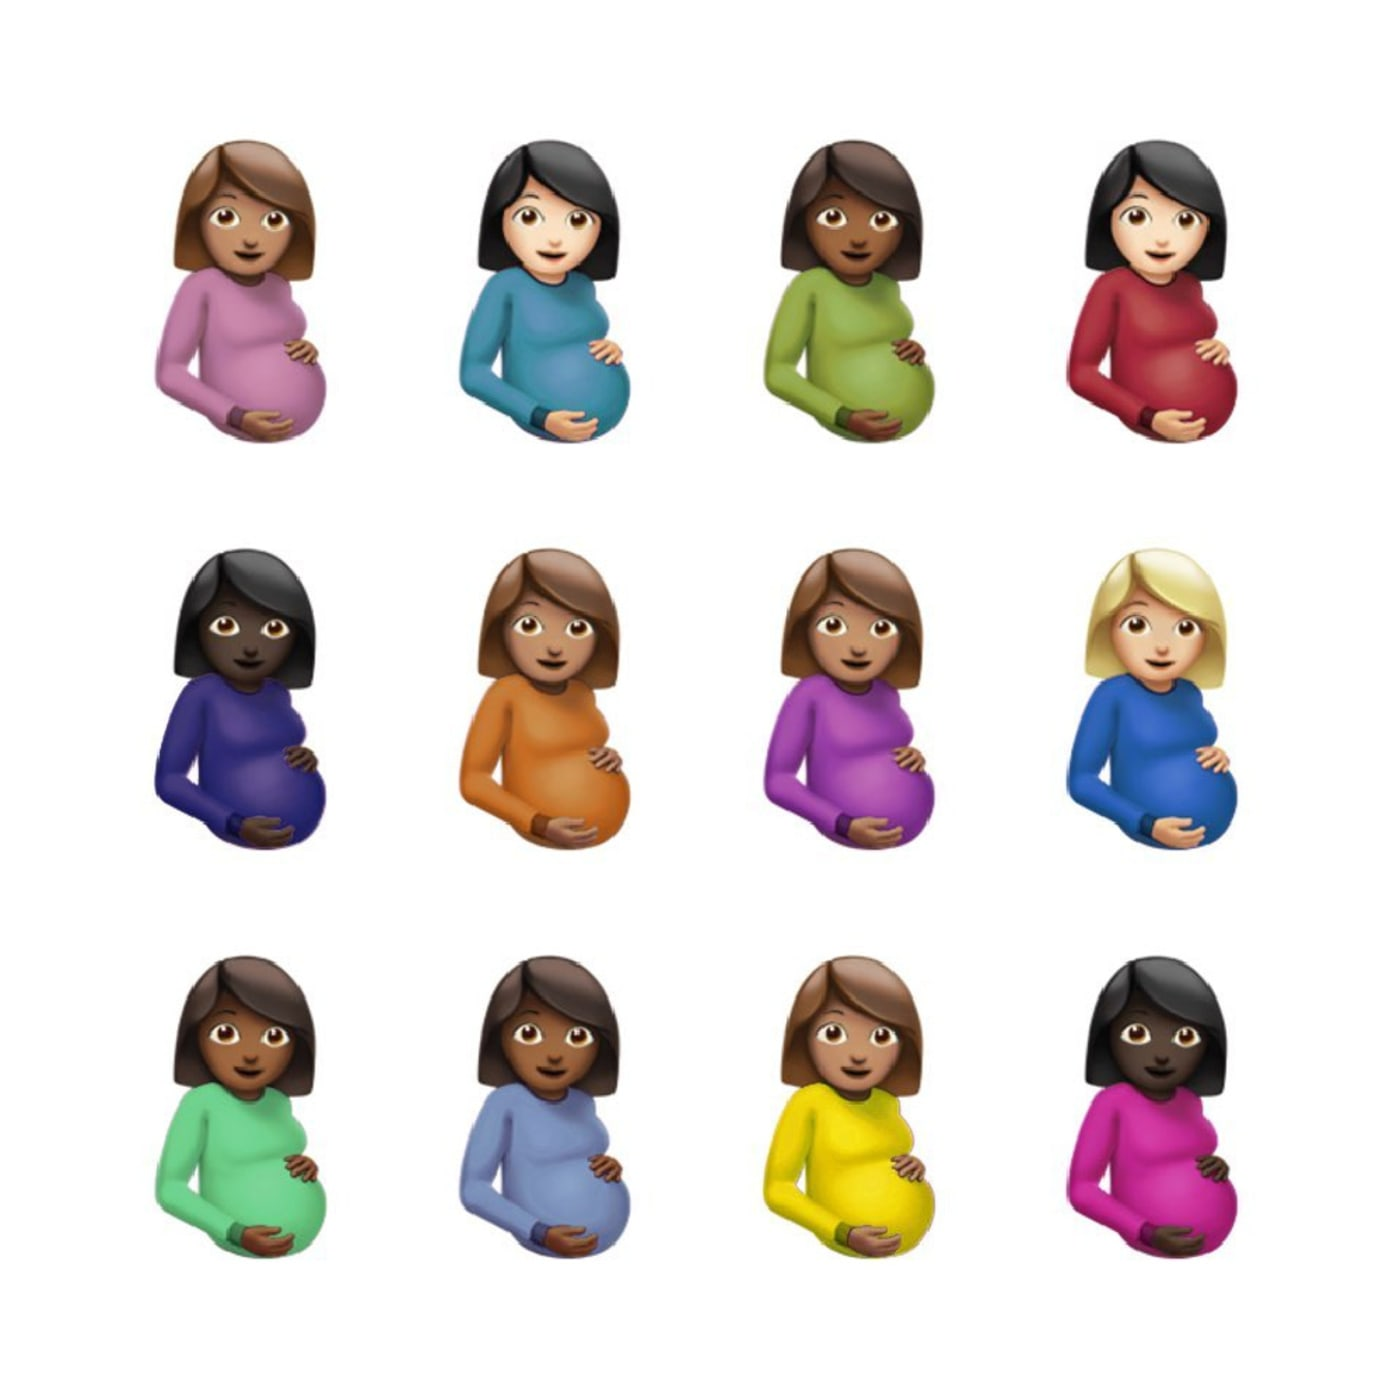 Album cover art for Drake's CLB featuring 12 emojis of pregnant women